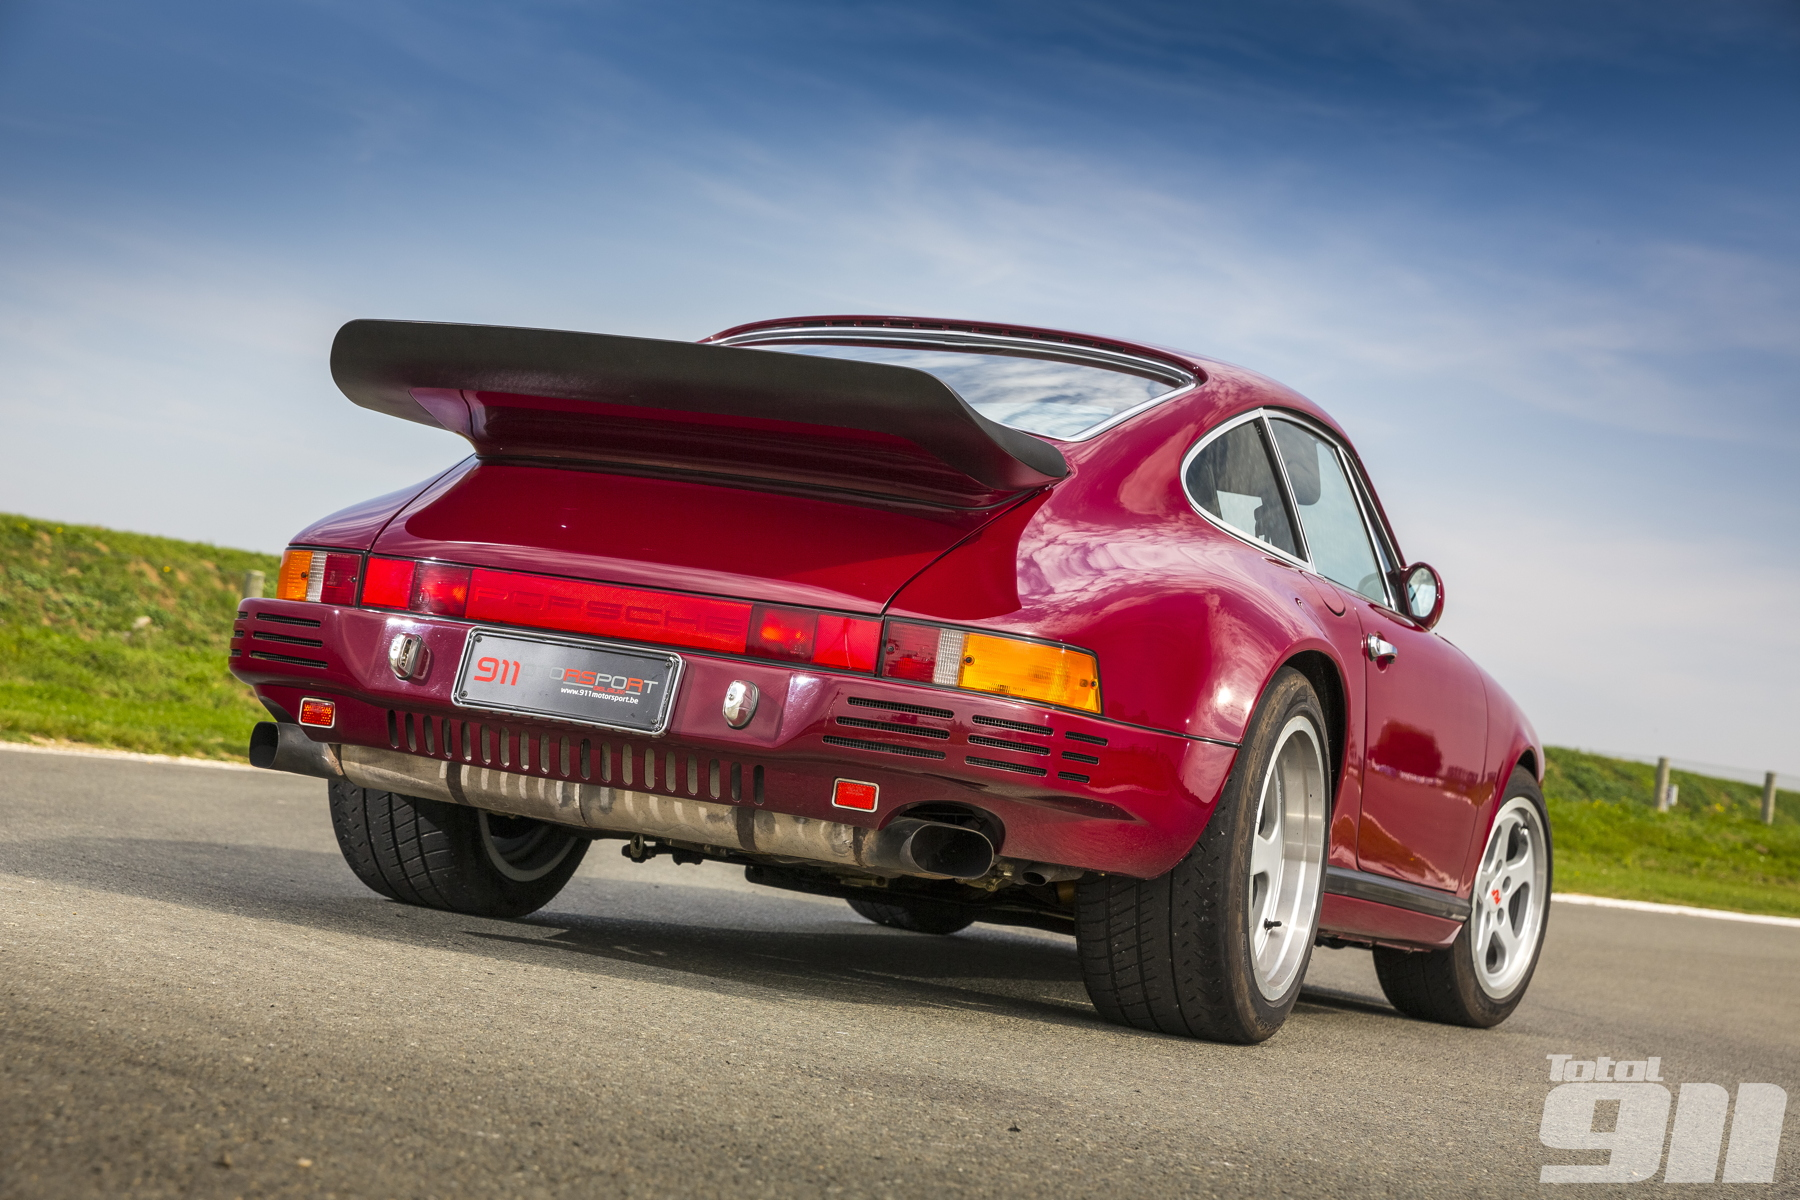 The Ruf CTR was the fastest car in the world in 1987. We get behind the wheel for an exhilarating test drive.